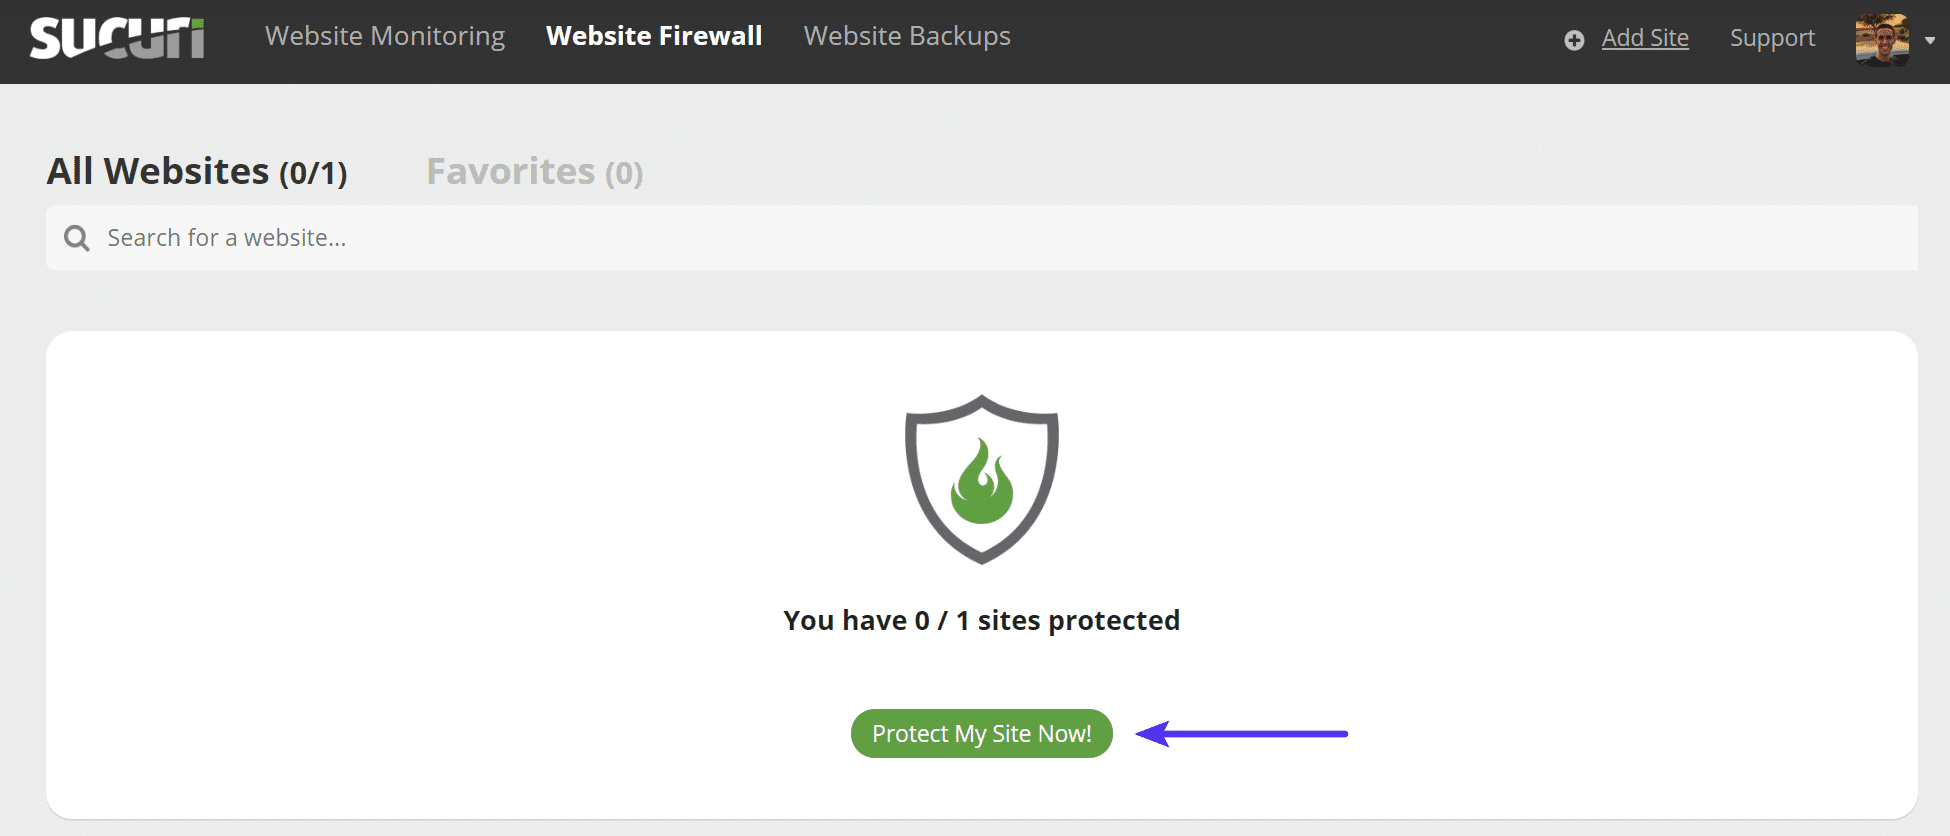 Sucuri protect my site